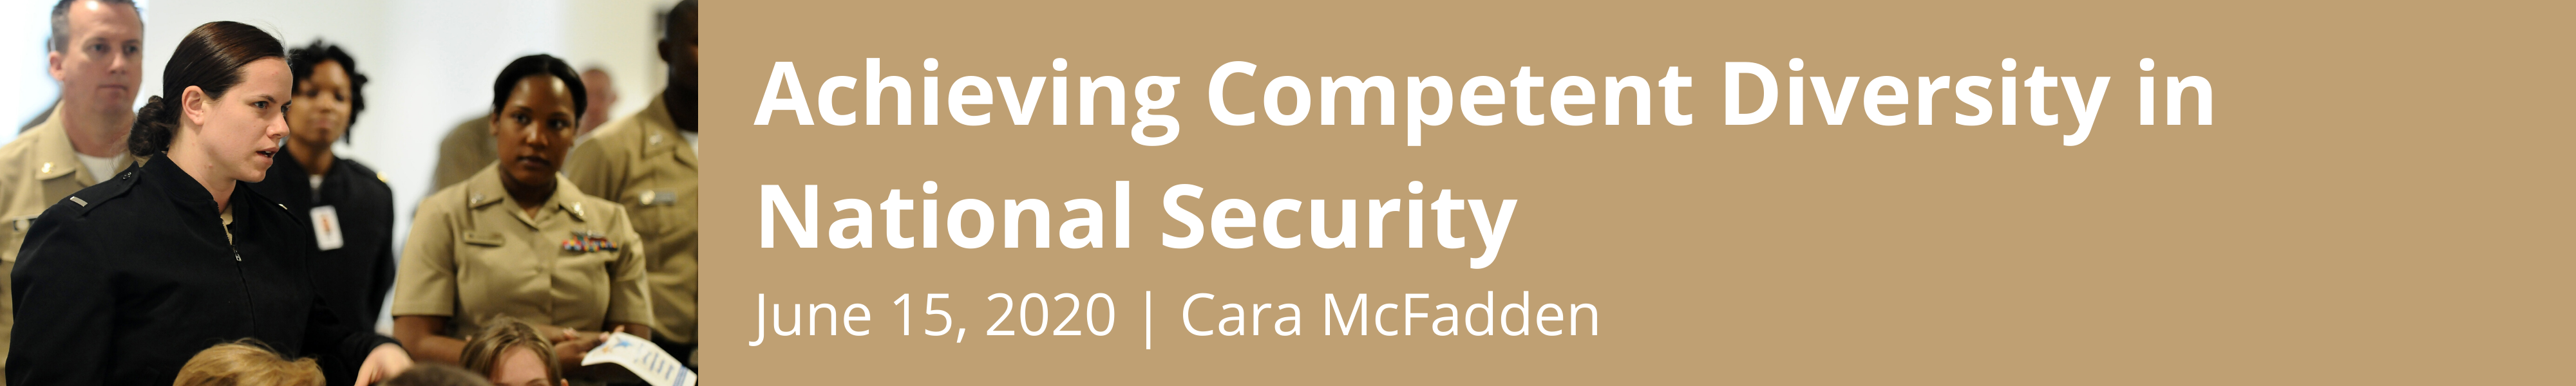 Achieving Competent Diversity in National Security